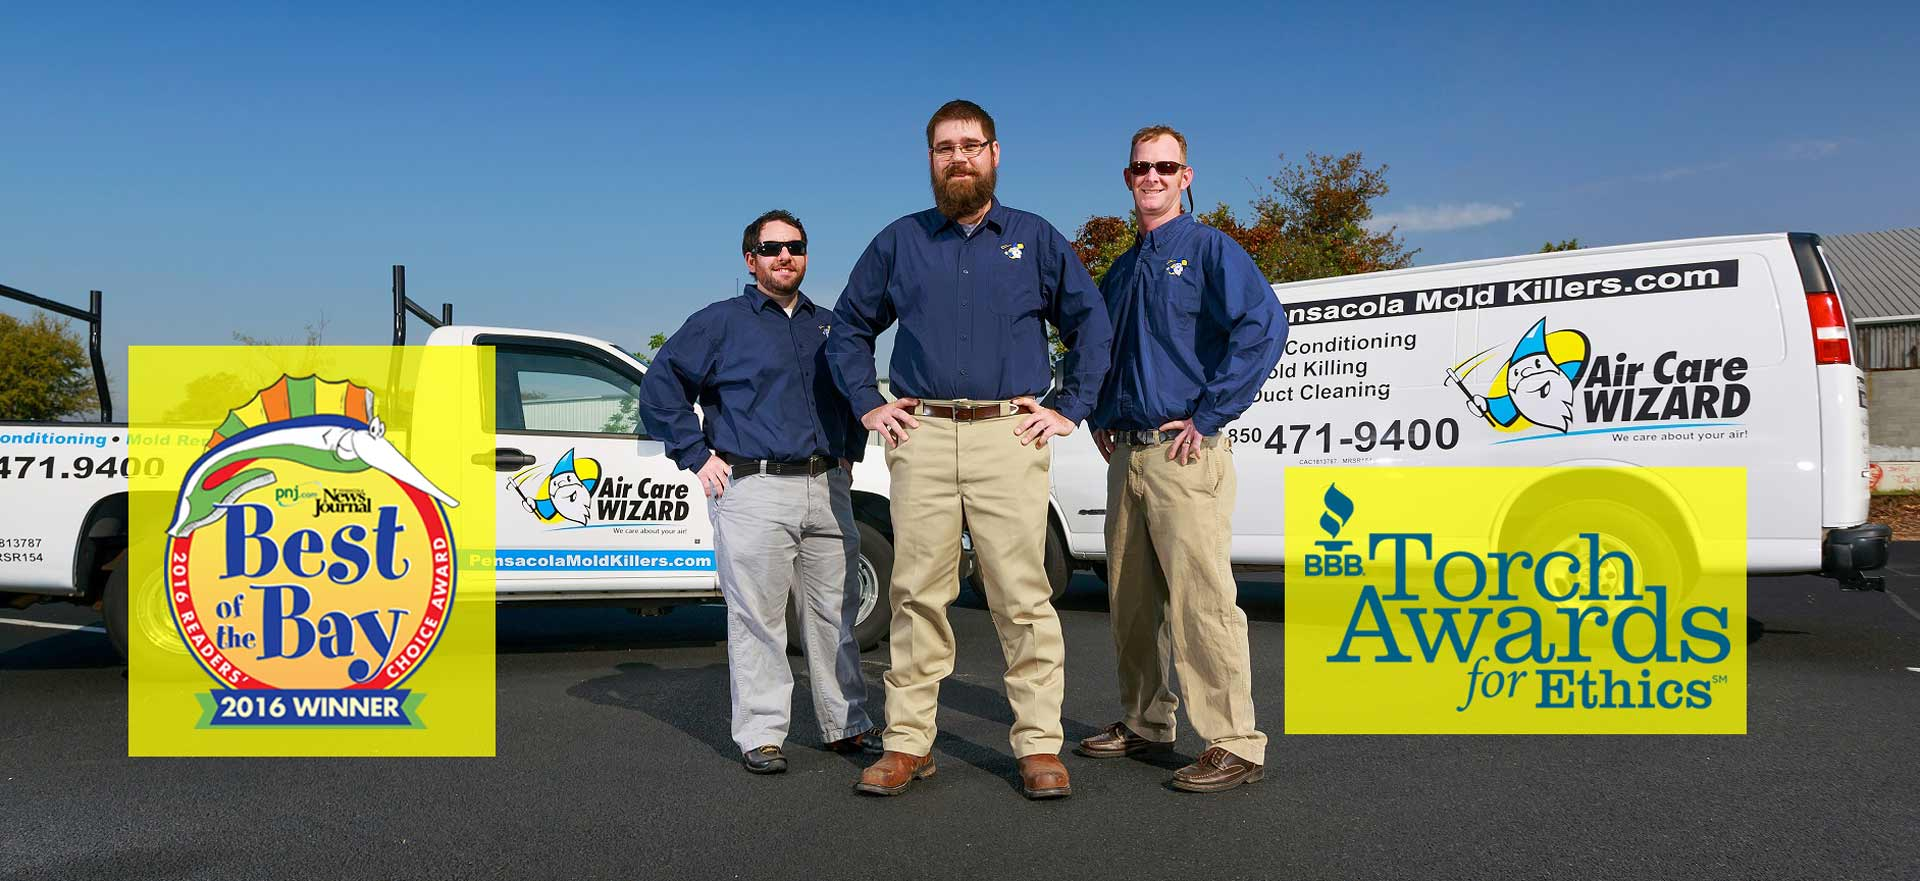 Air Care Wizard technicians standing in front of work vehicles